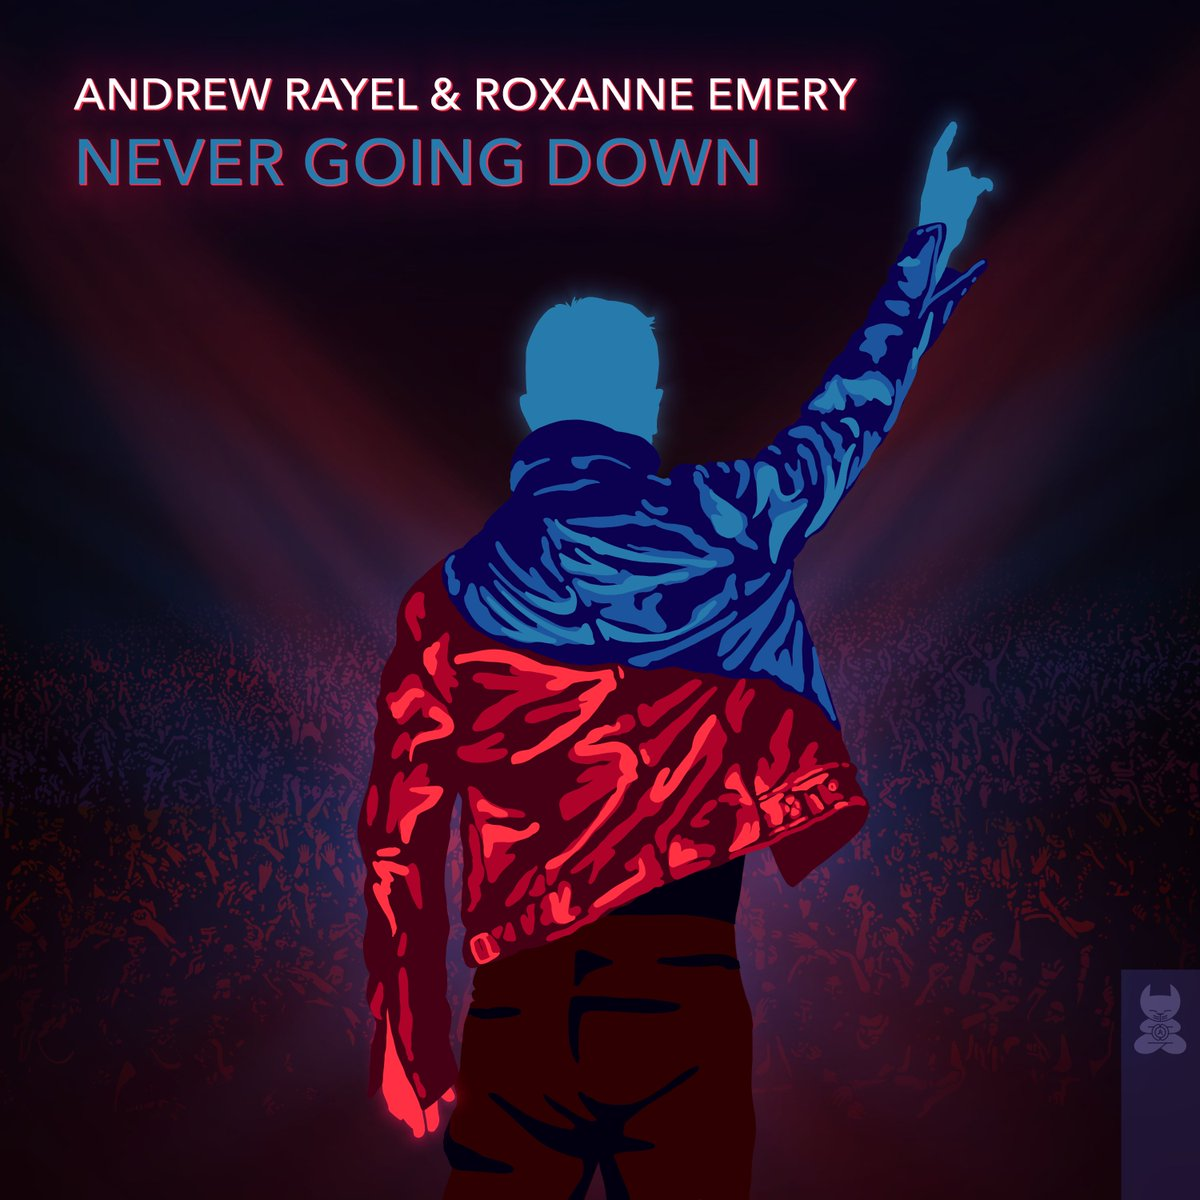 2 days until 'Never Going Down' is released, who's ready? ❤️ #NeverGoingDown @Roxanne_Emery https://t.co/CLImPBUA90